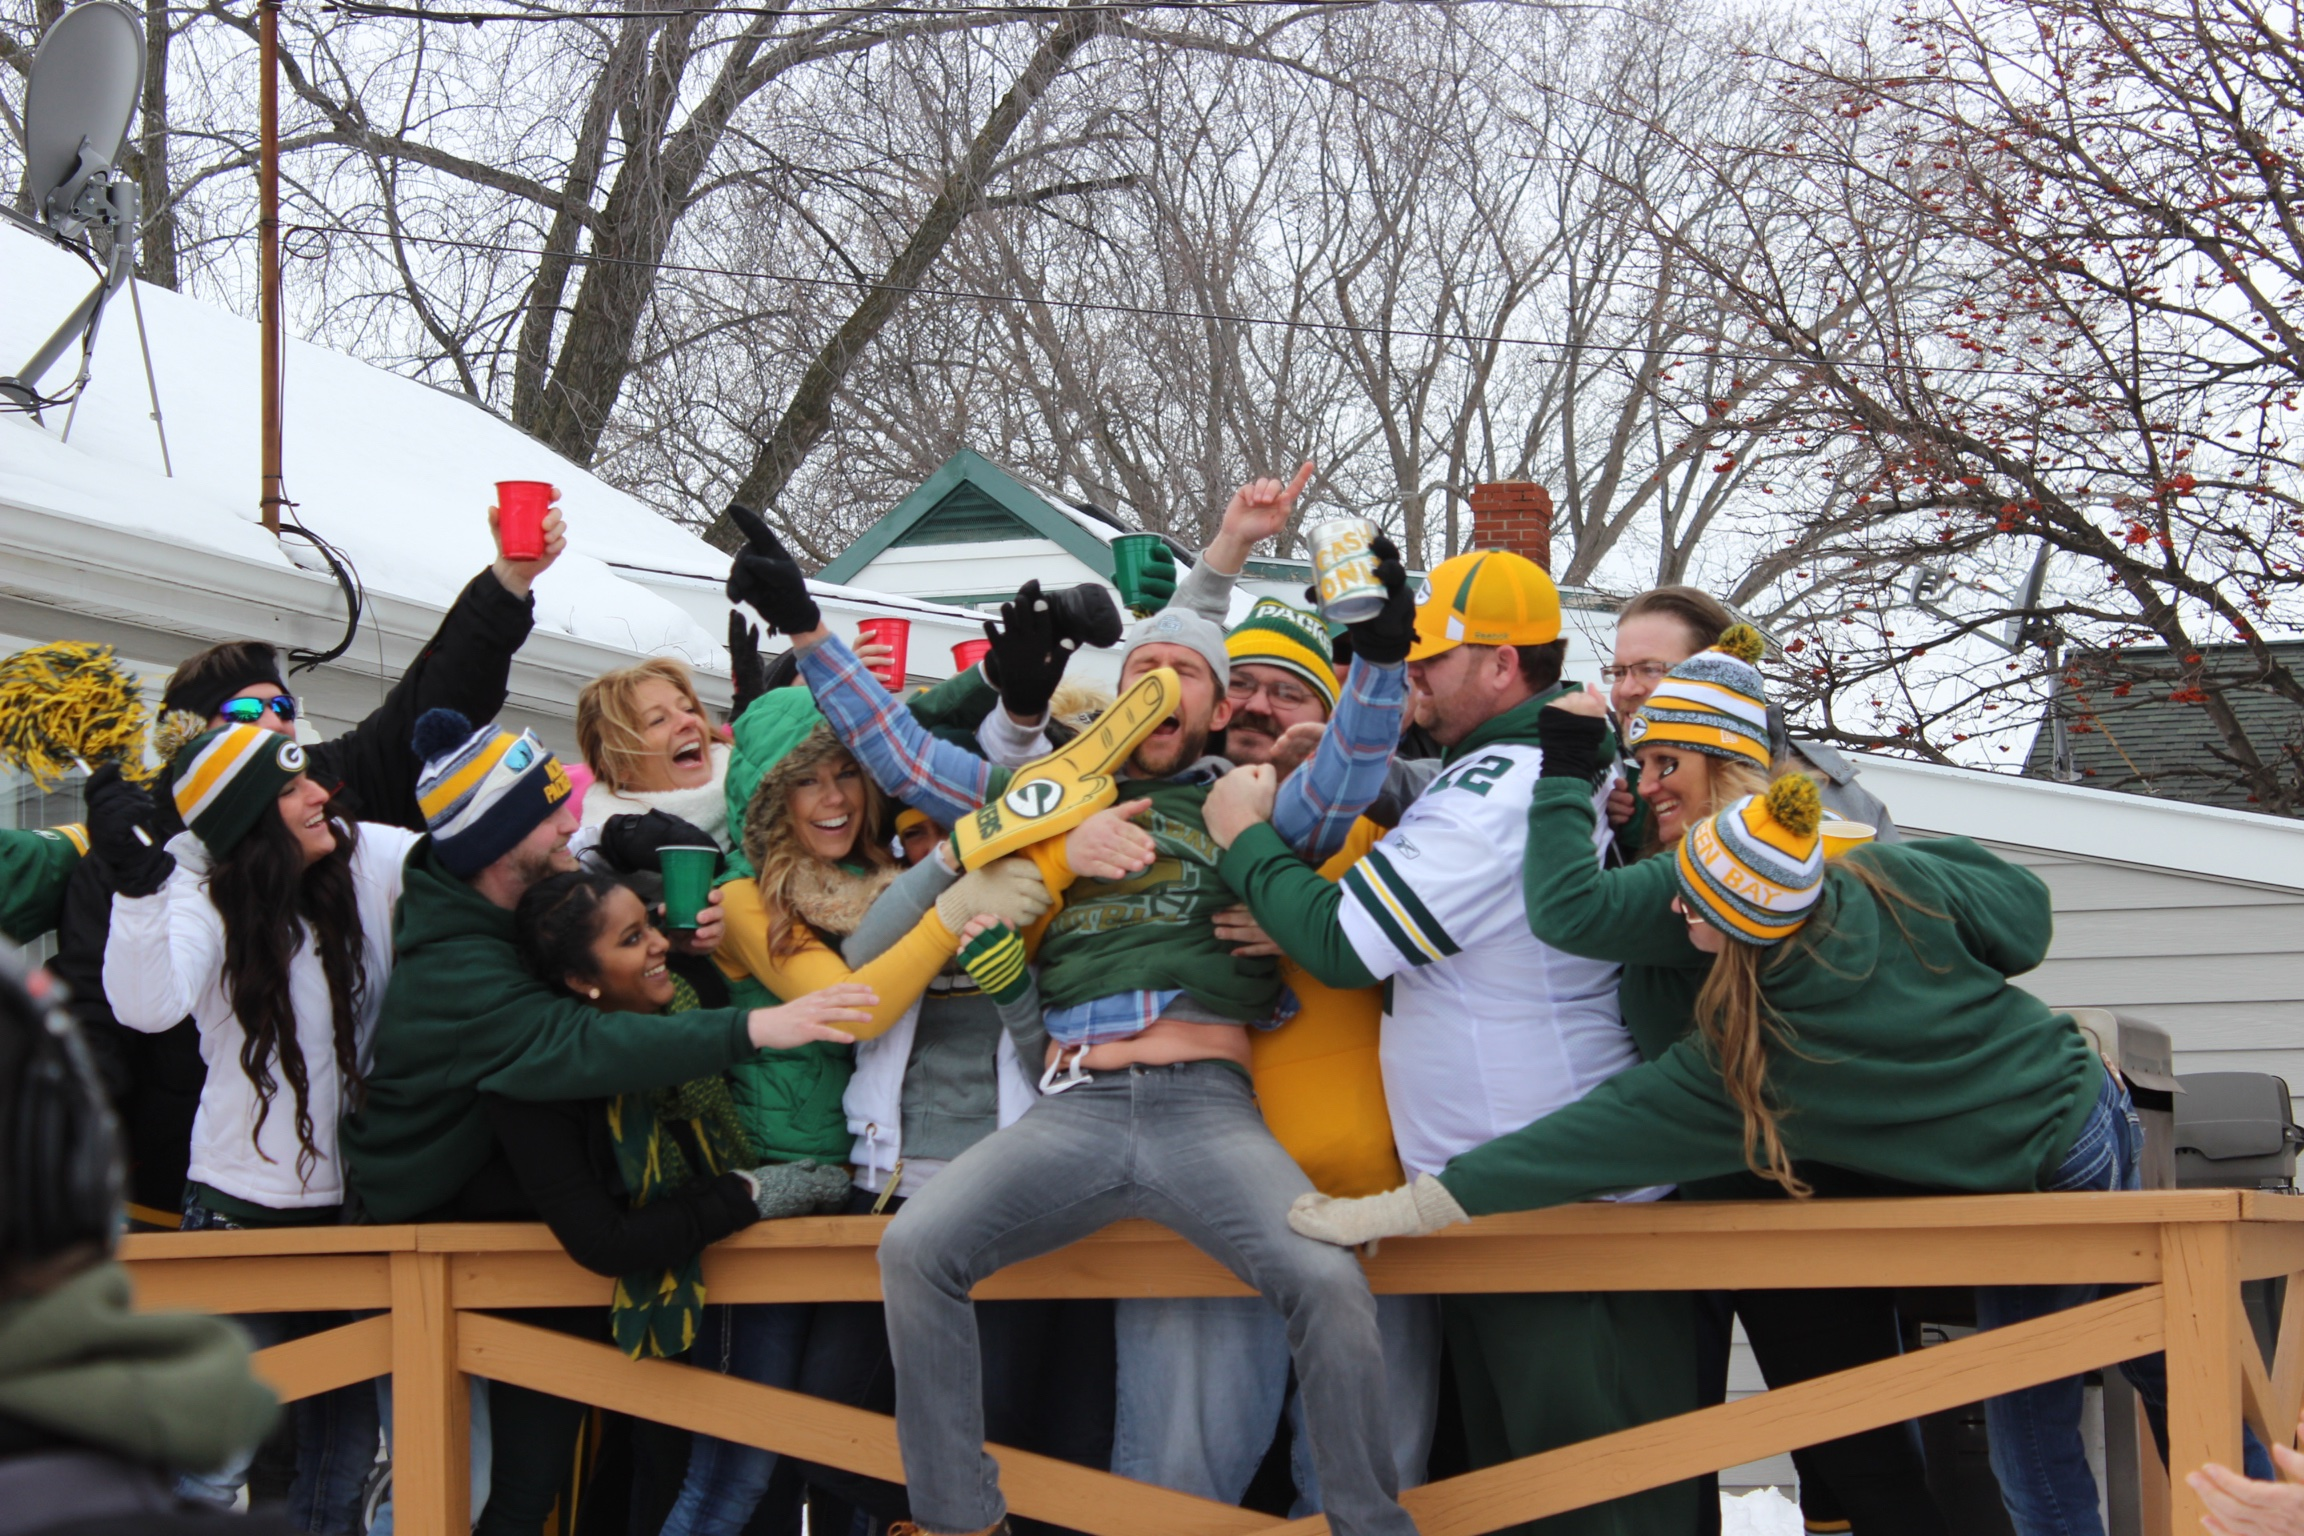 A crowd of Packers fans reenacts the Lambeau Leap in a scene from The 60-Yard Line.